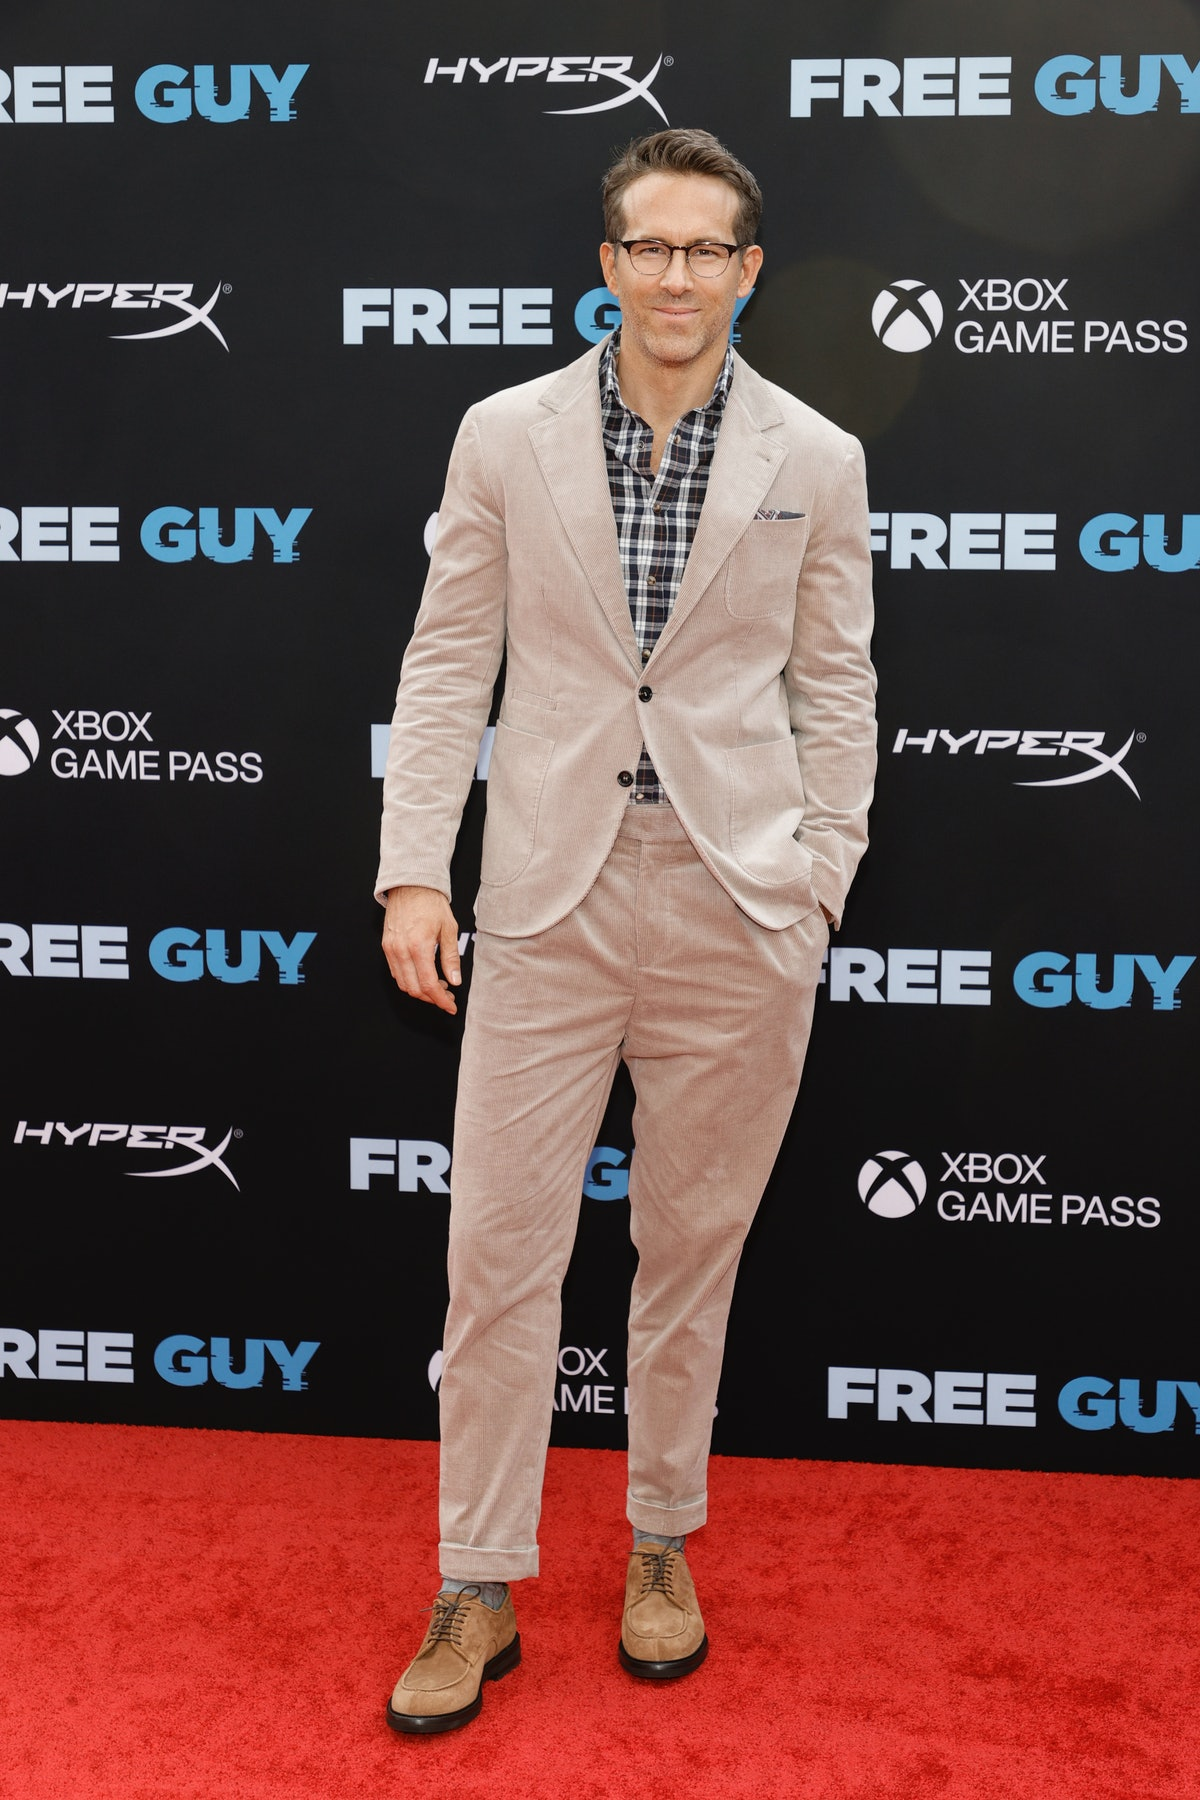 """NEW YORK, NEW YORK - AUGUST 03: Ryan Reynolds attends the """"Free Guy"""" New York Premiere at AMC Lincol..."""